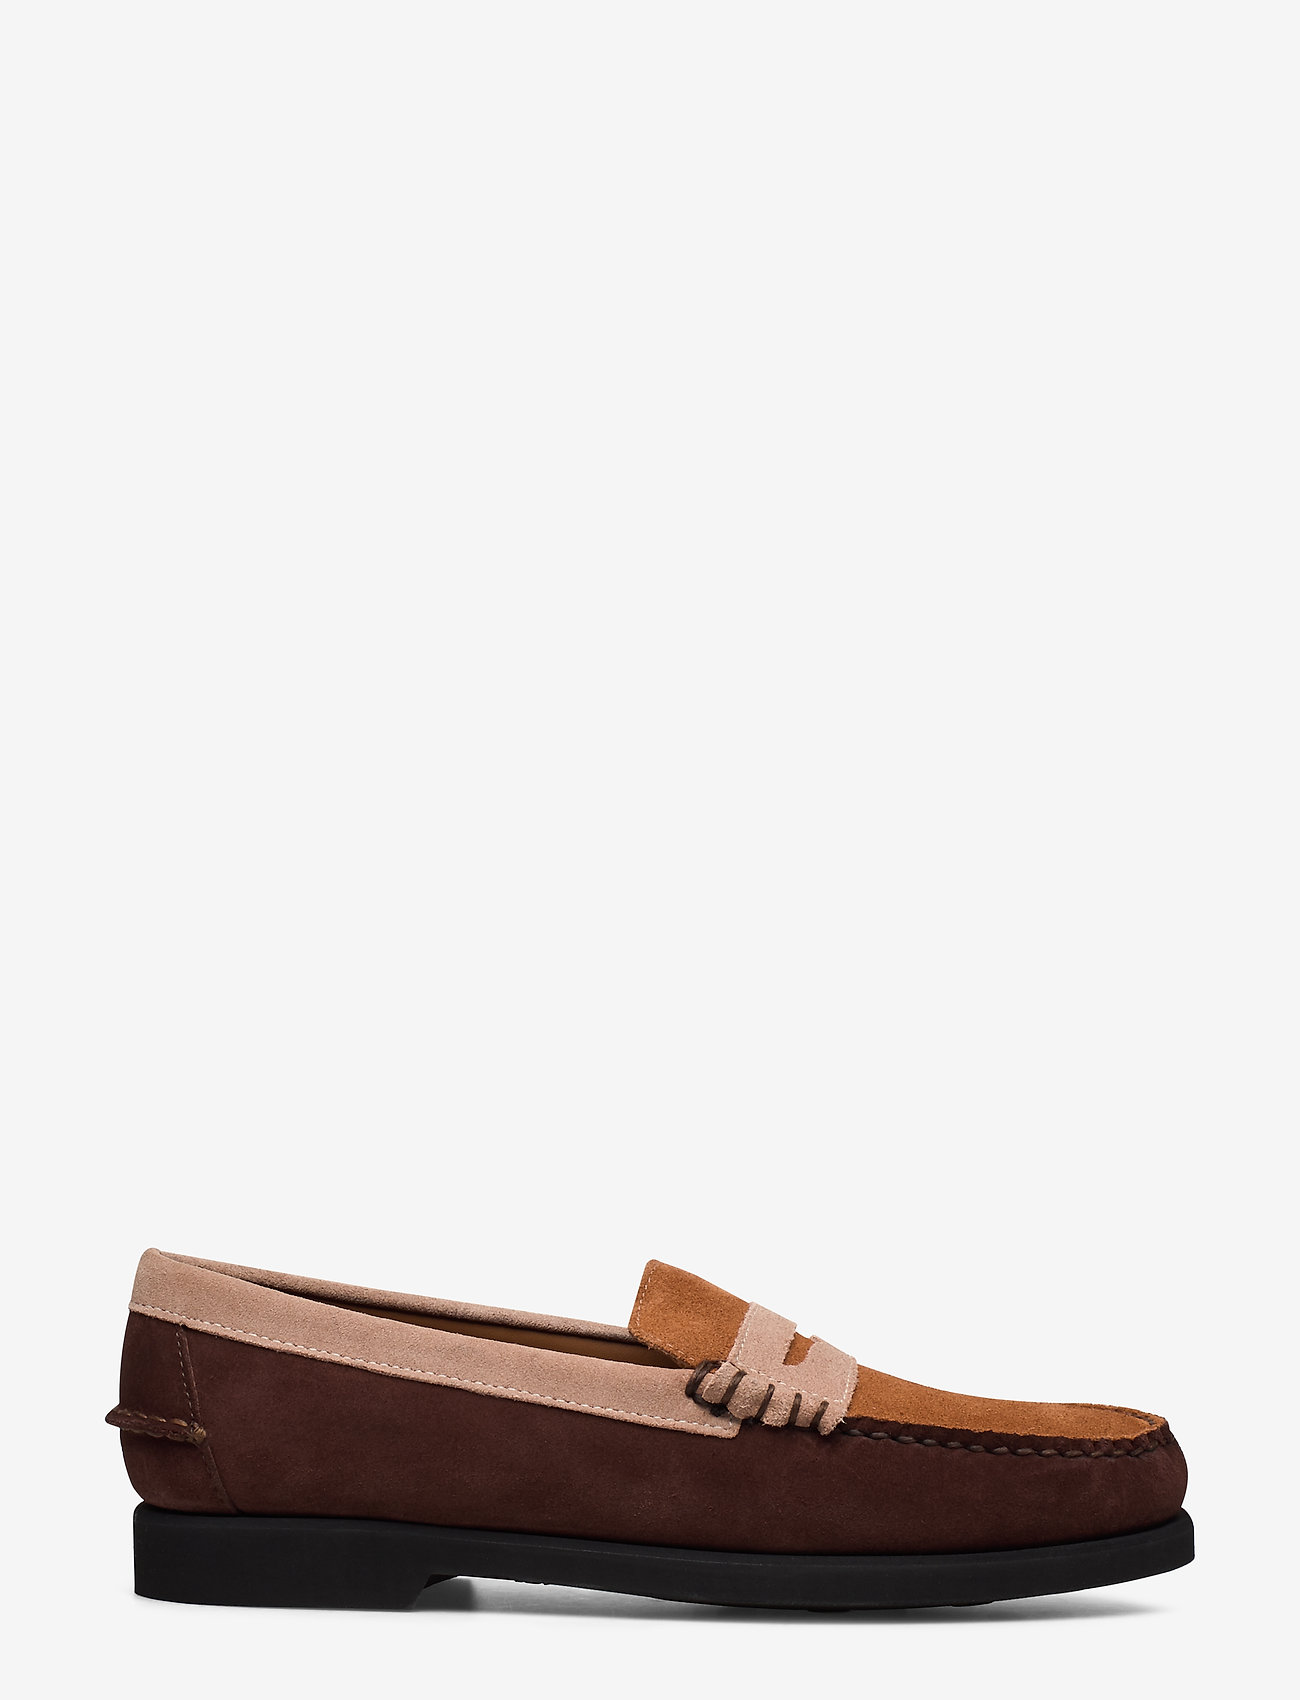 Sebago - Dan Suede Tricolor Polaris - loafers - dk brown/taupe/cogna - 1